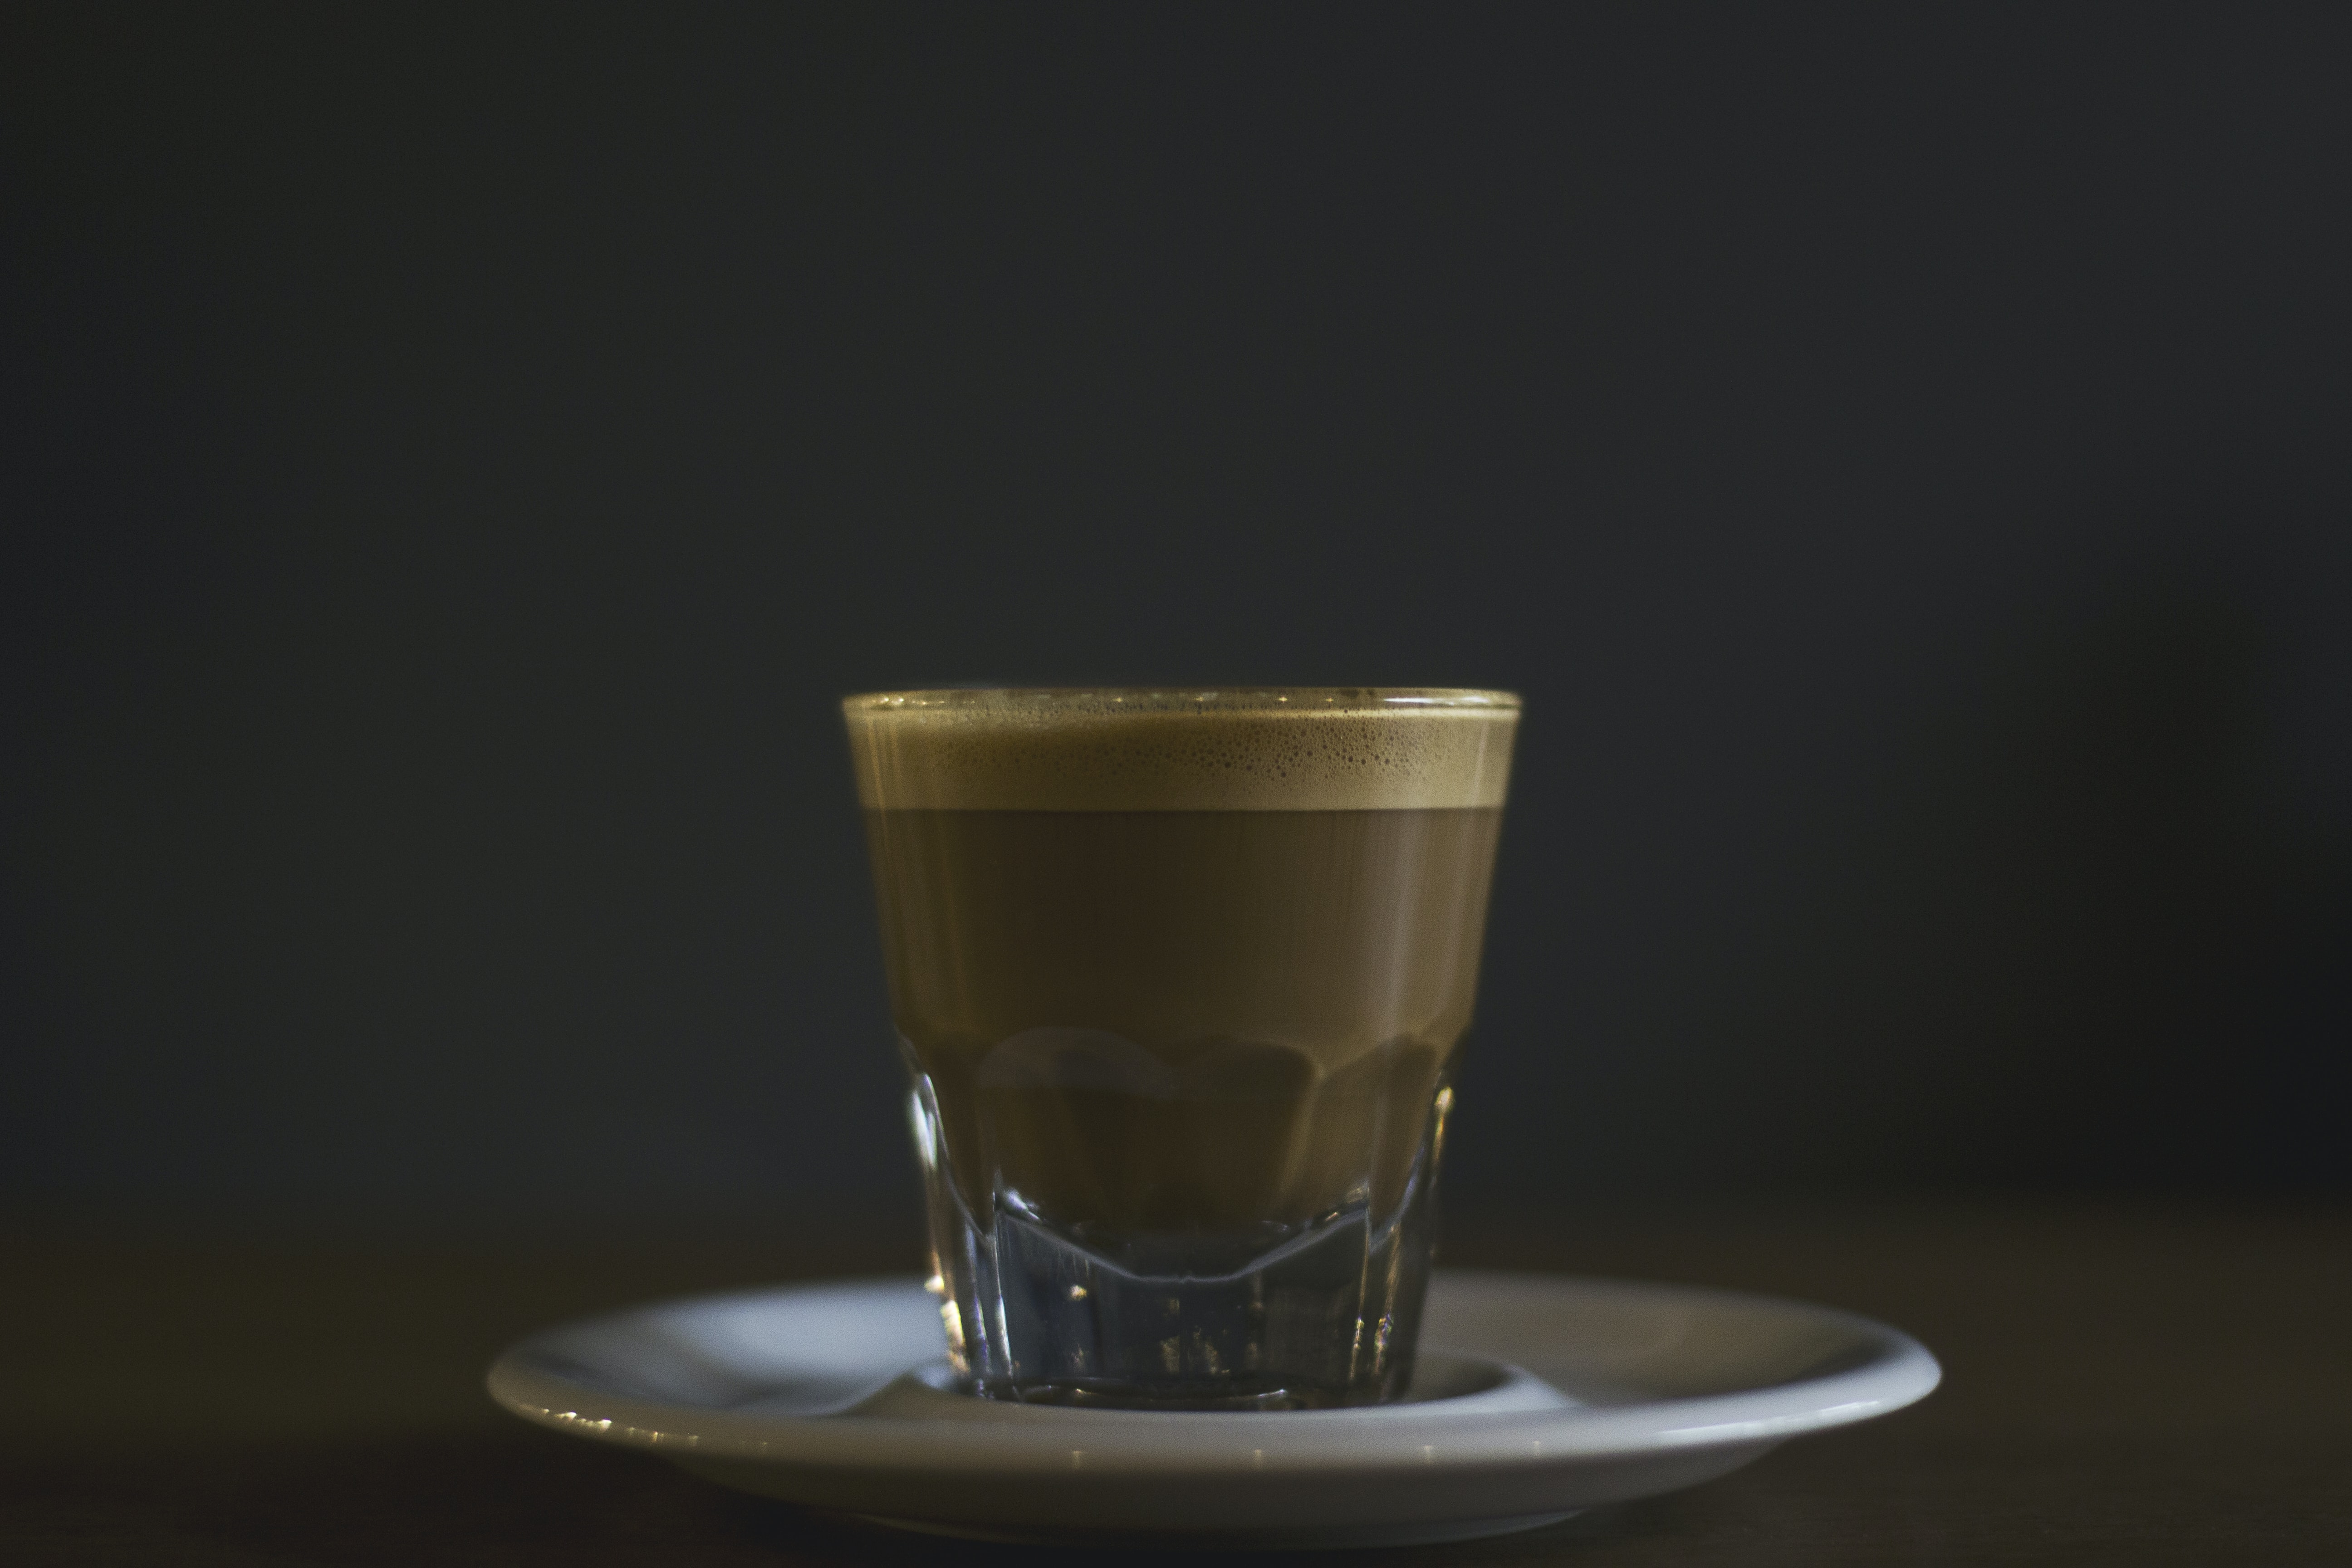 Espresso in a clear glass on a white saucer with a black featureless background